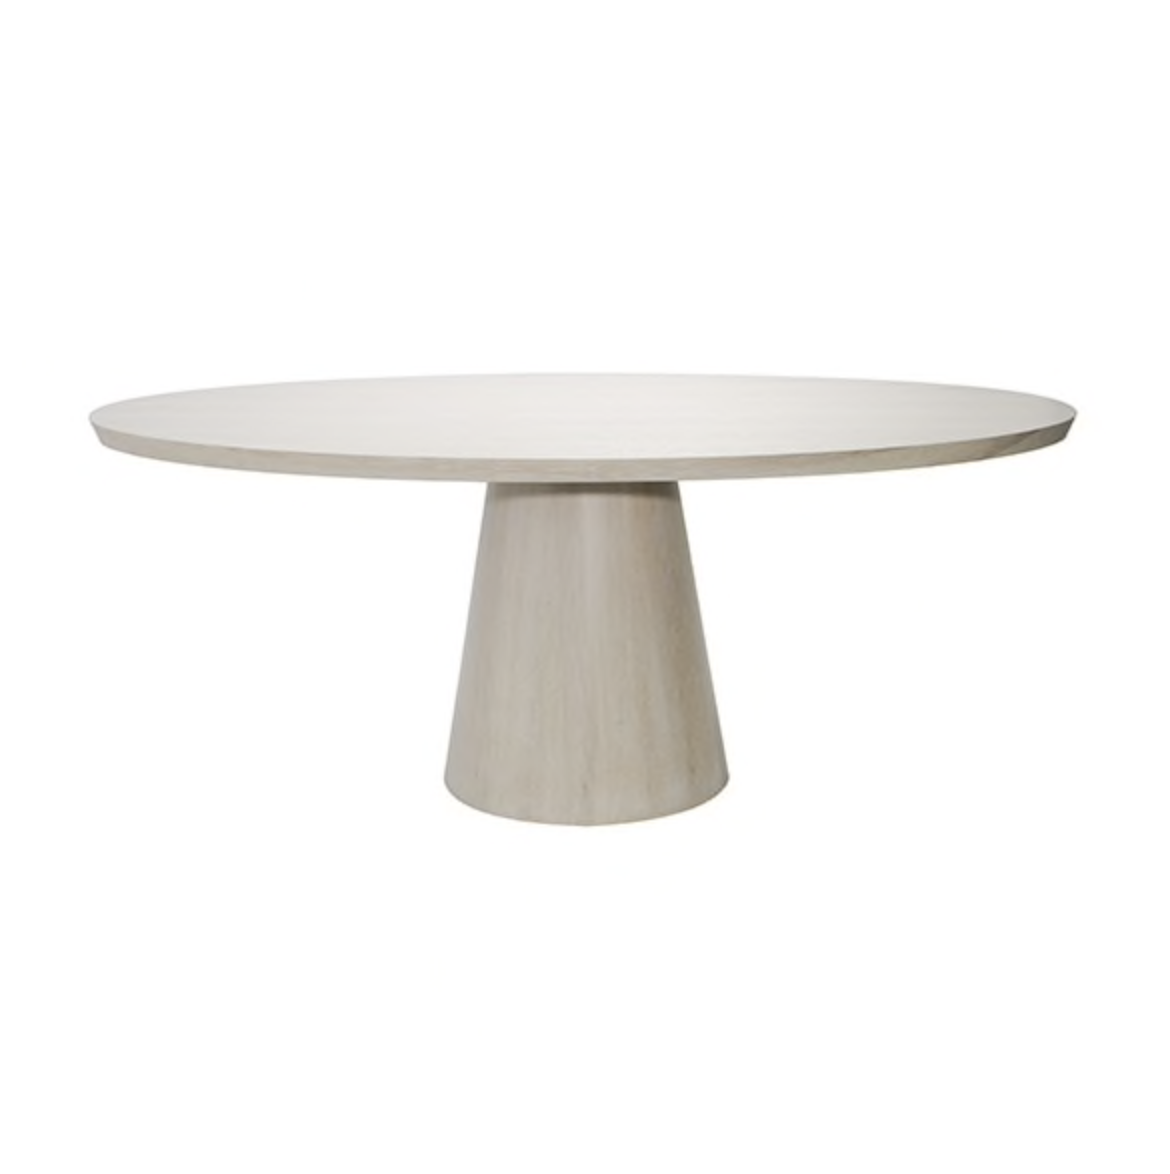 Jefferson Oval Dining Table Cerused Oak Oval Table Dining